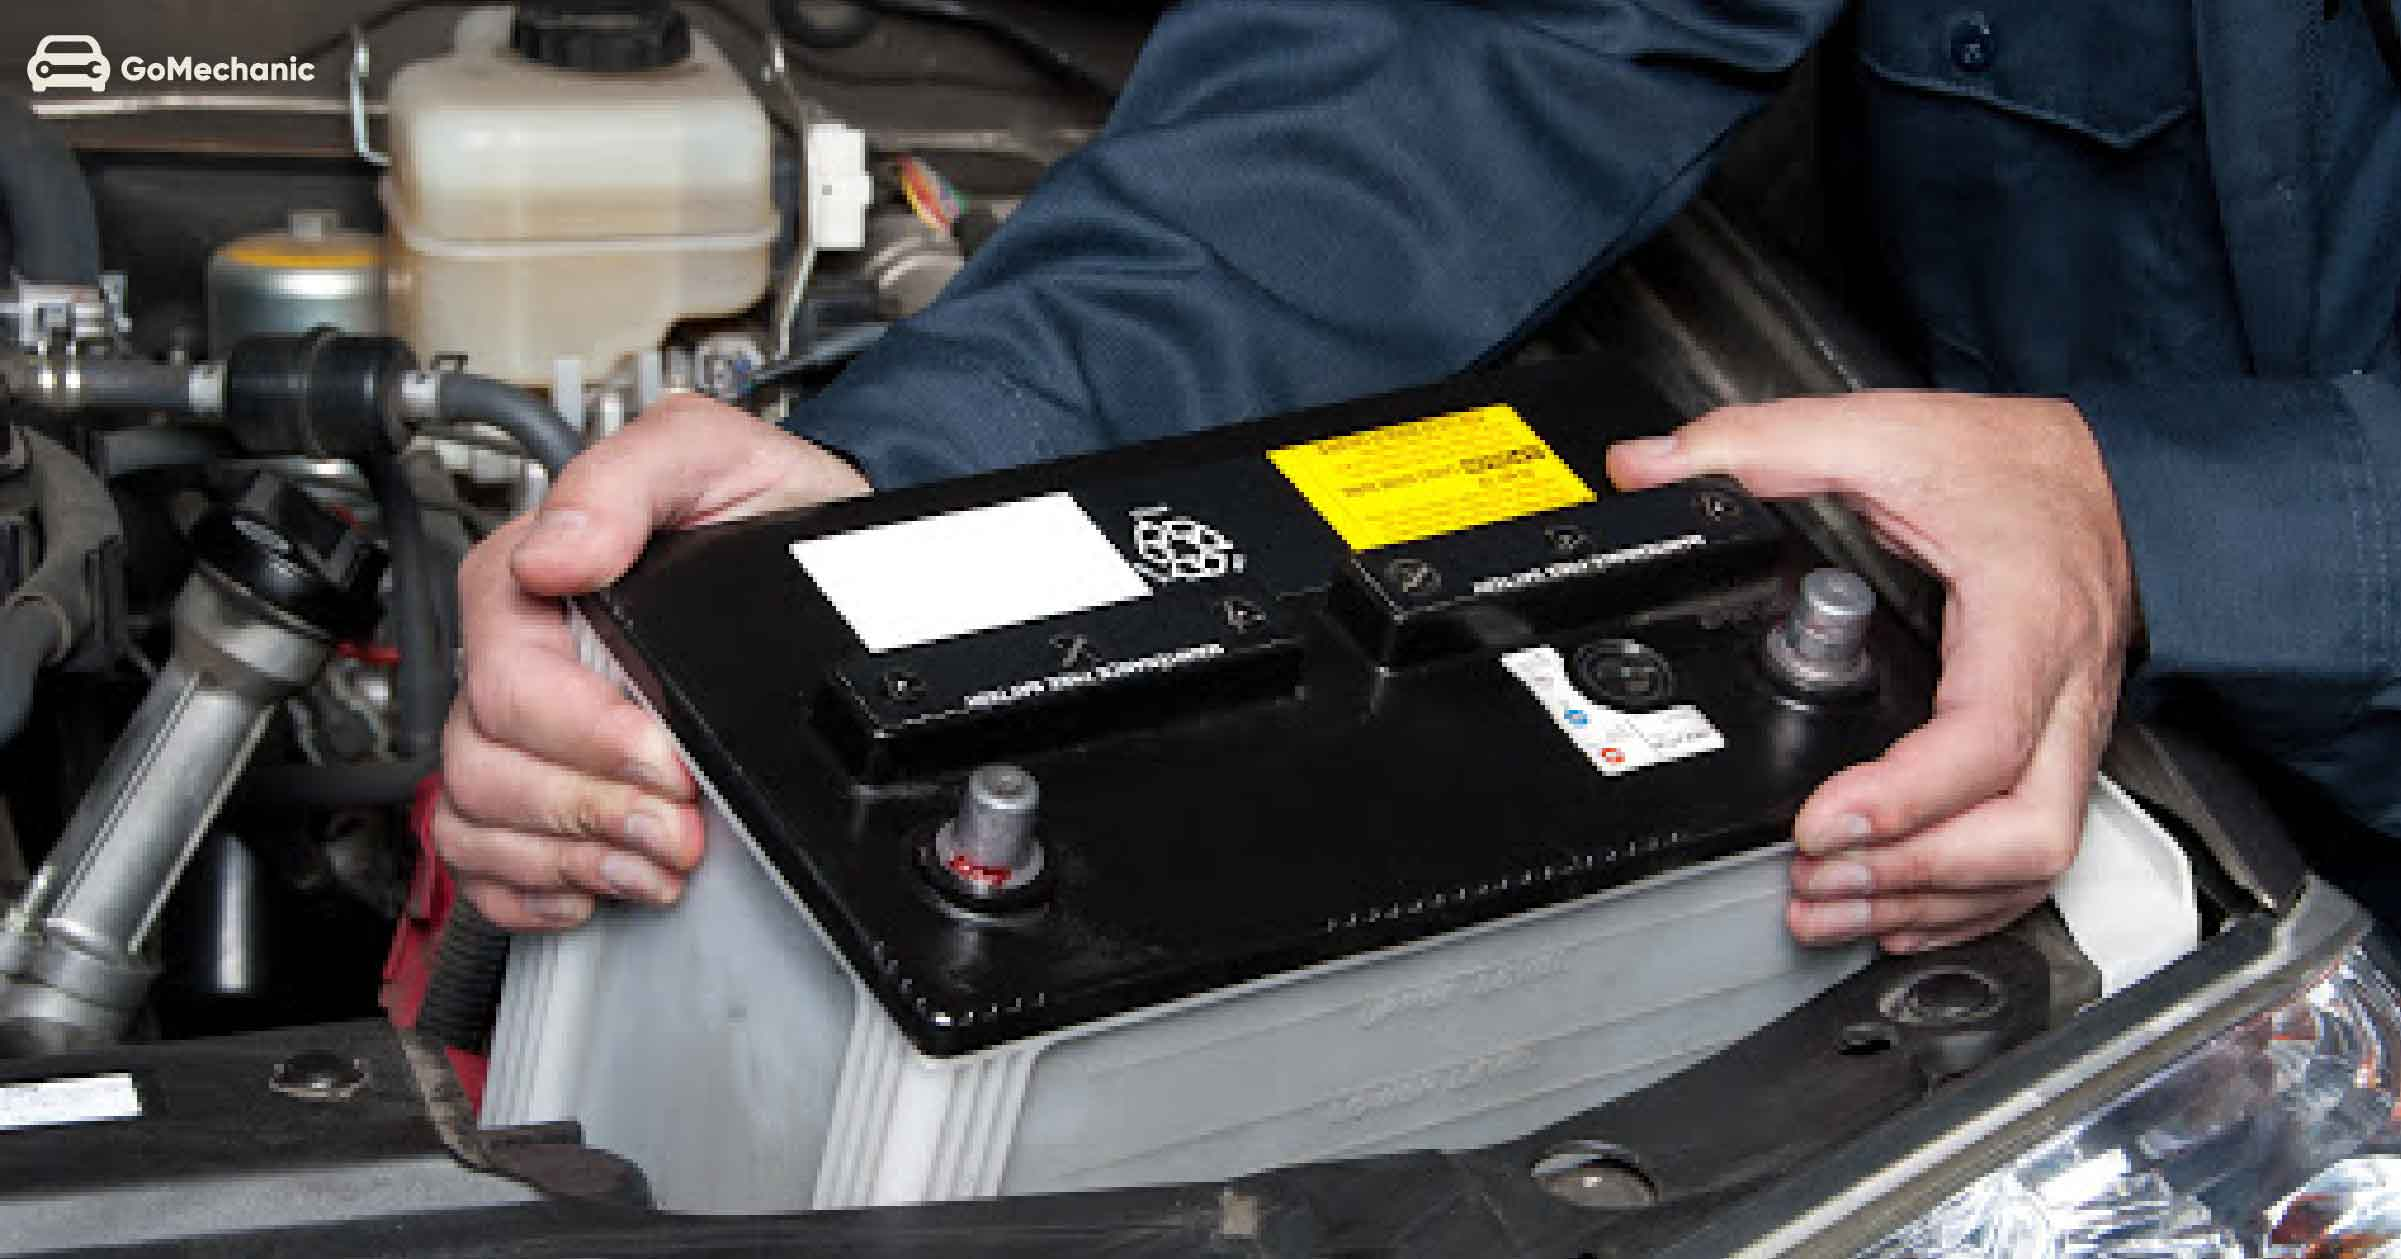 Time to choose yourbatteryreplacementservice